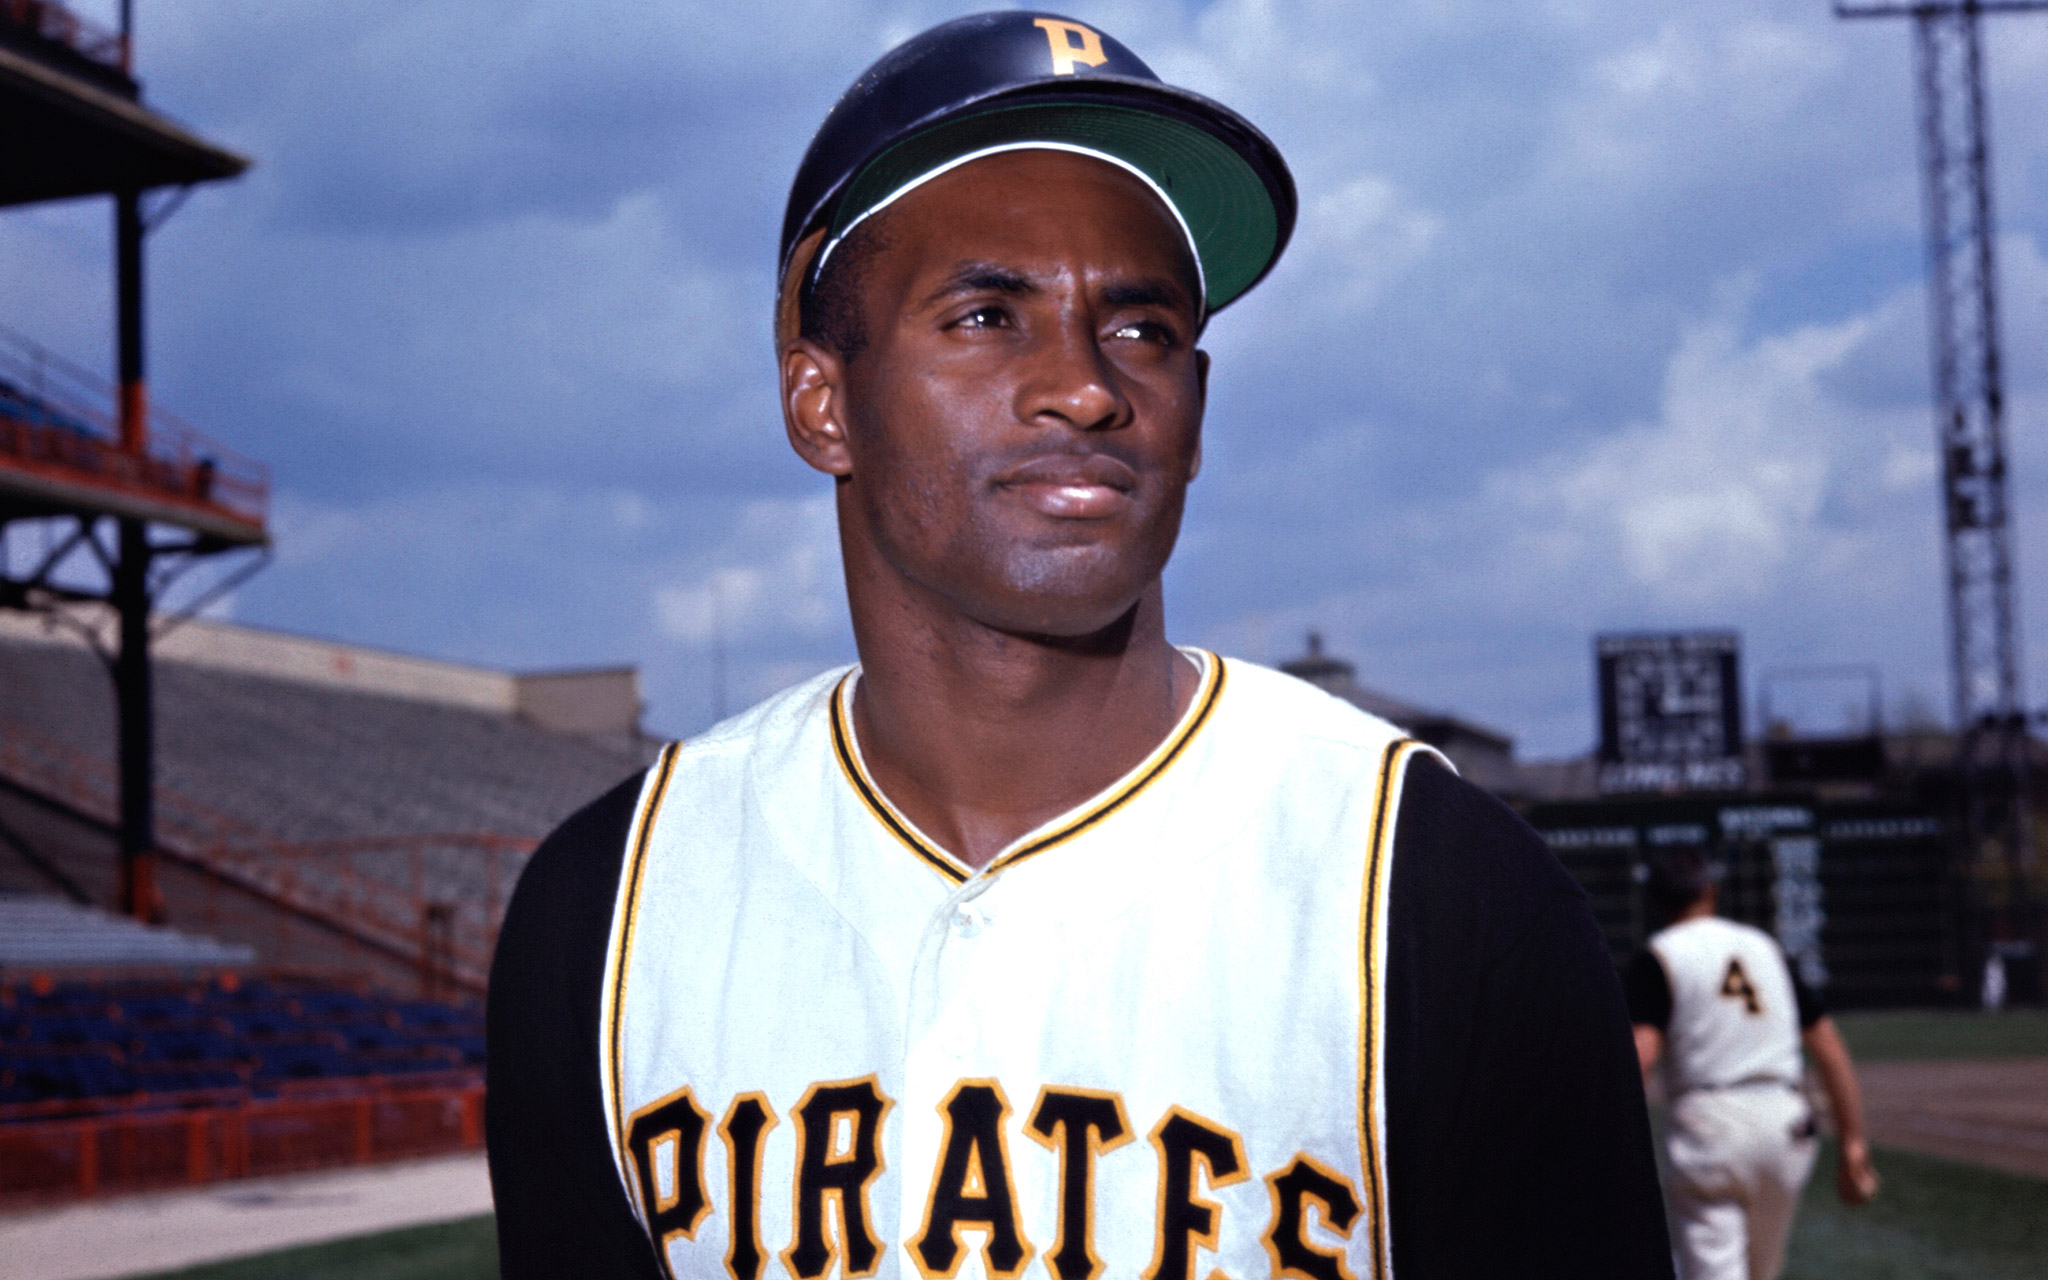 Roberto Clemente (Puerto Rico) - Breakthrough MLB Players ... Felipe Alou